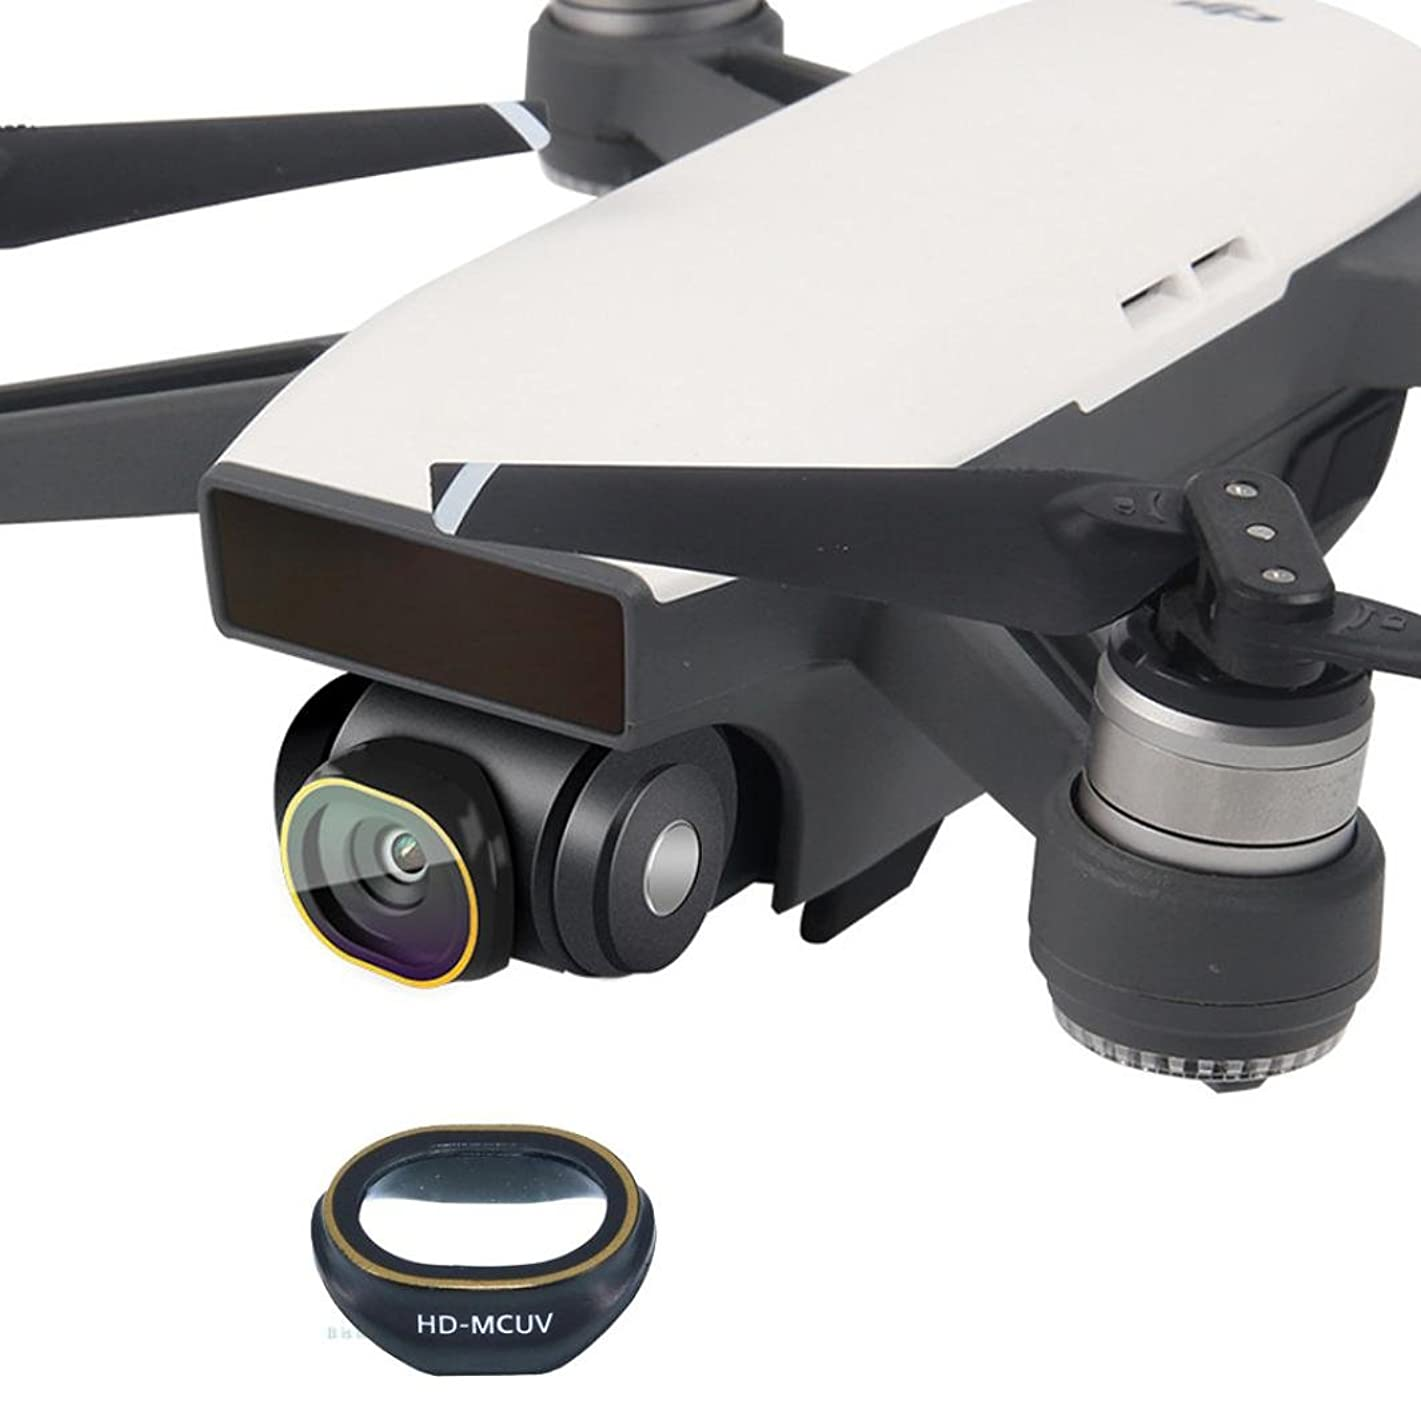 Quartly Gimbal Camera HD Lens Filter For DJI SPARK Drone MCUV/CPL/ND4/ND8/ND16/ND32